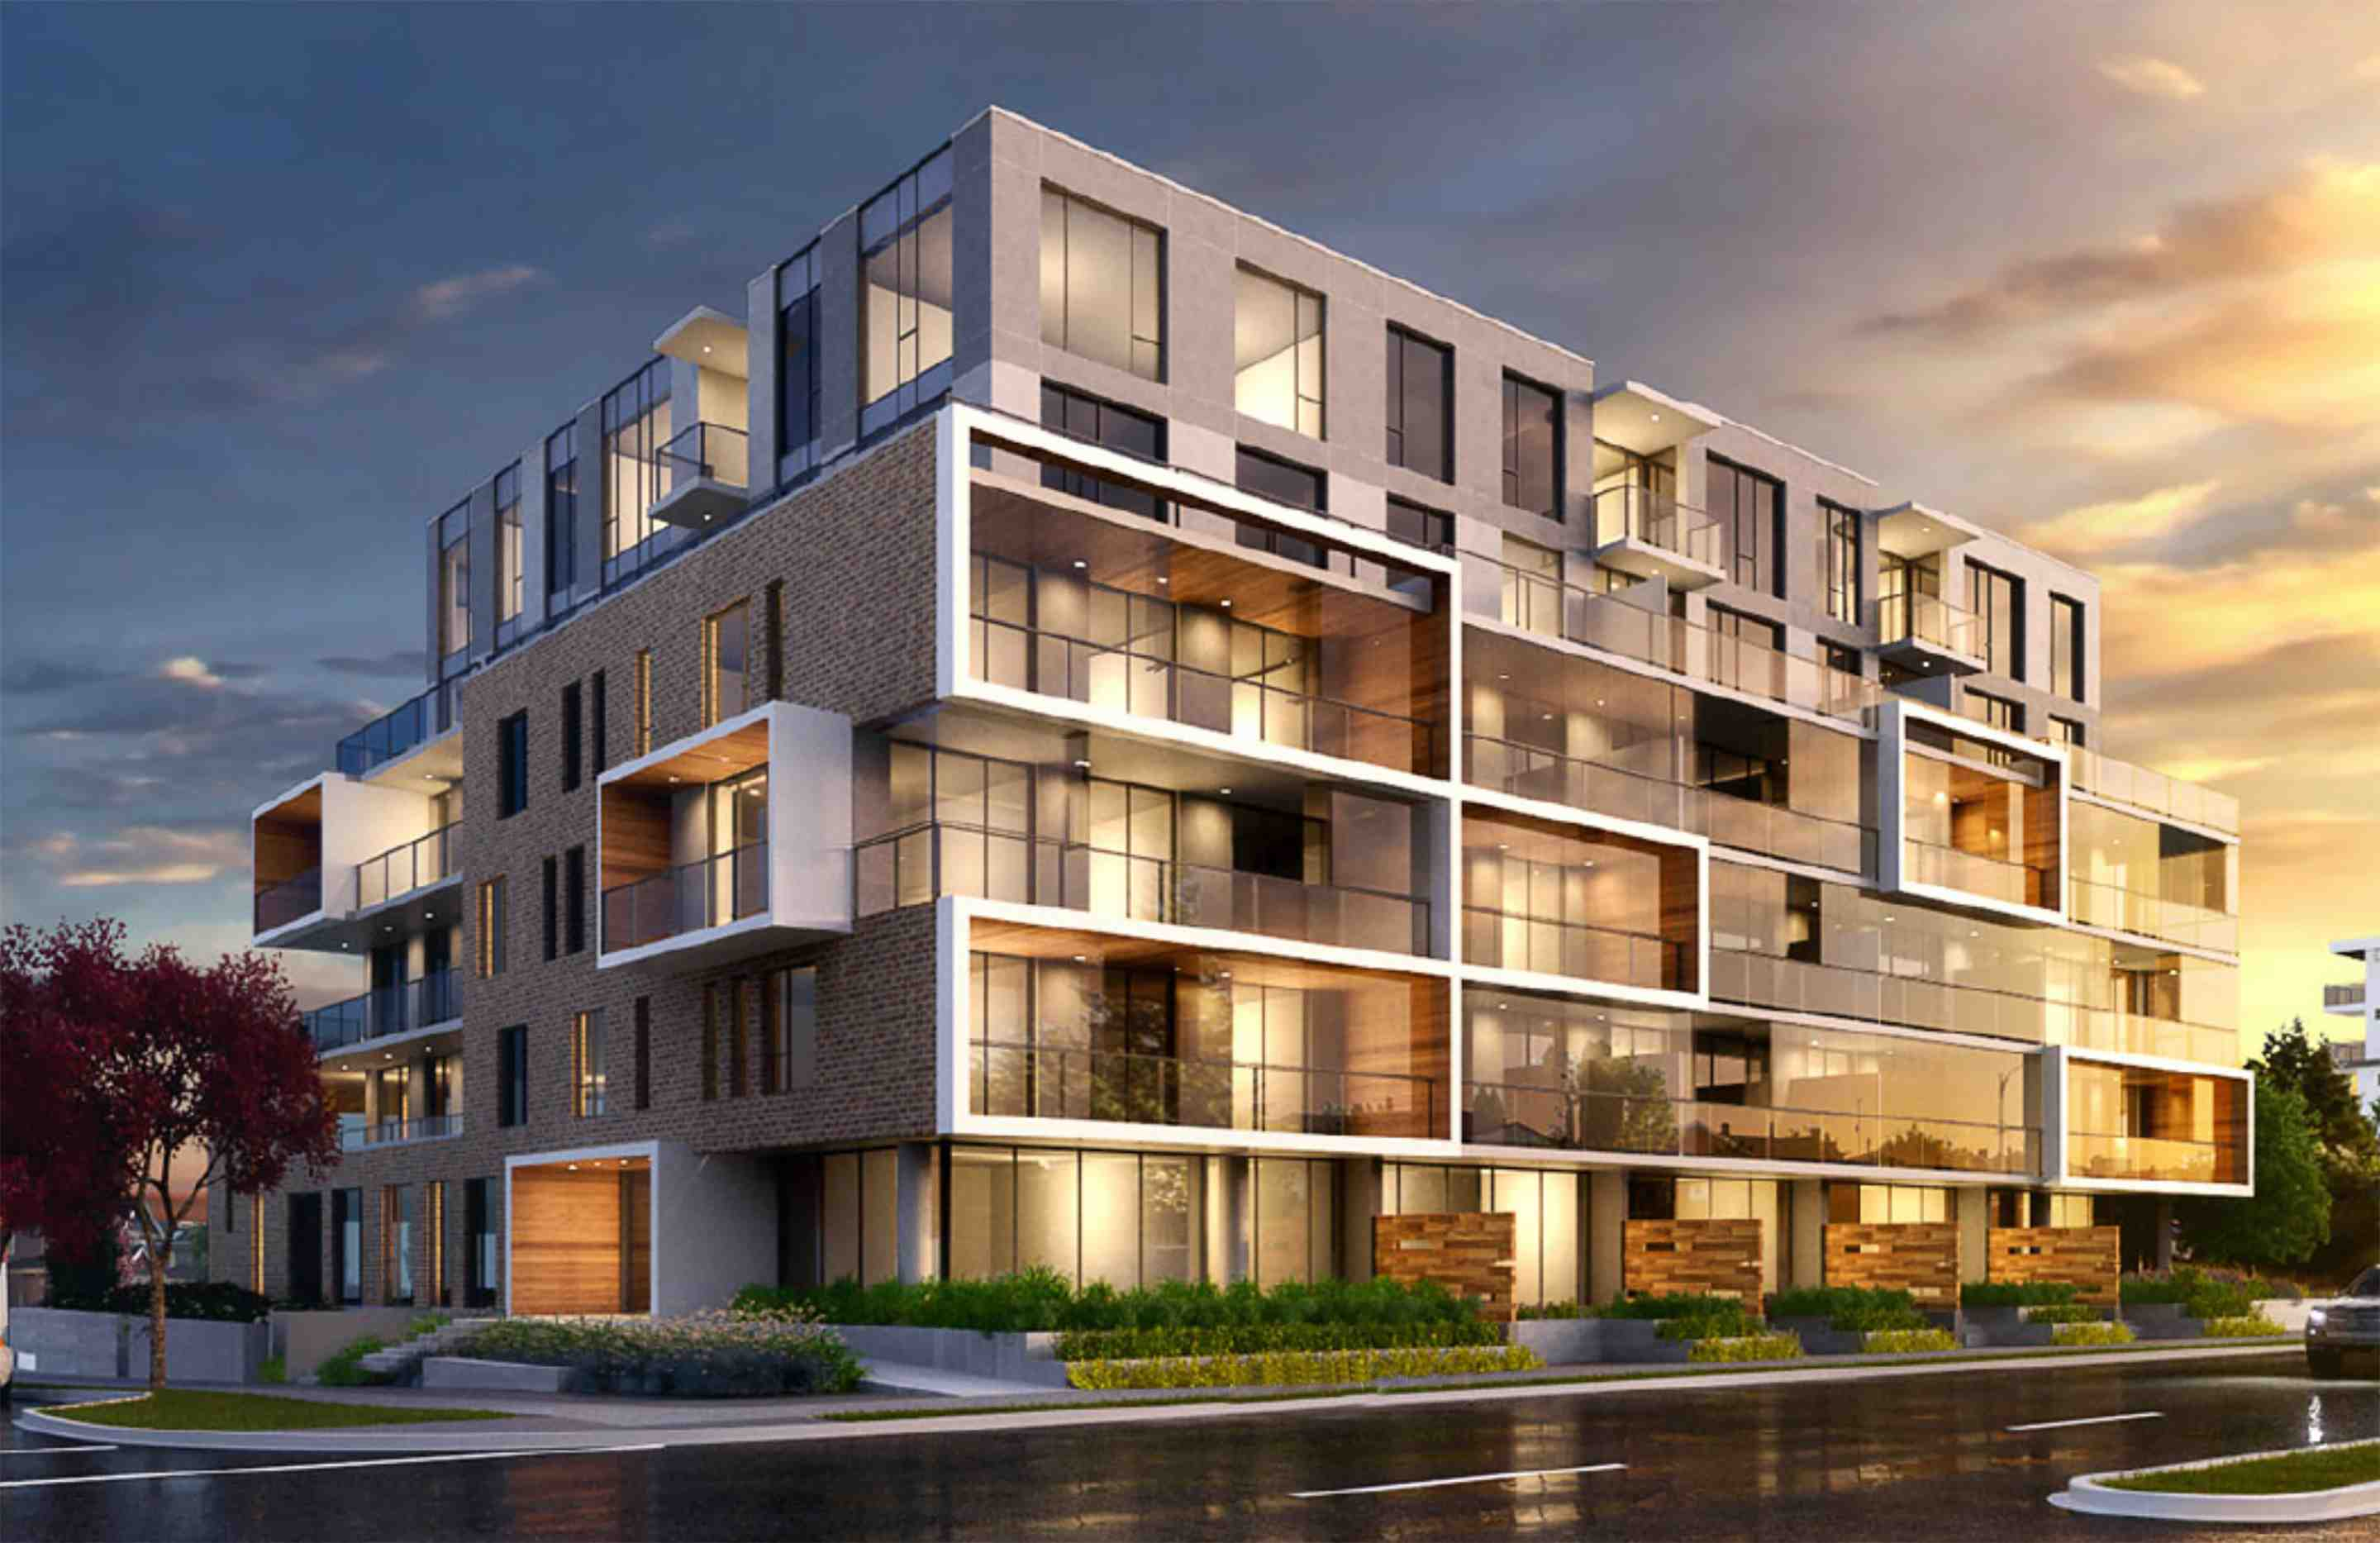 upcoming projects, lumon projects, architect designs, condo approved, building renovation, building construction, vancouver, toronto, toronto building renovation, vancouver building project renovation